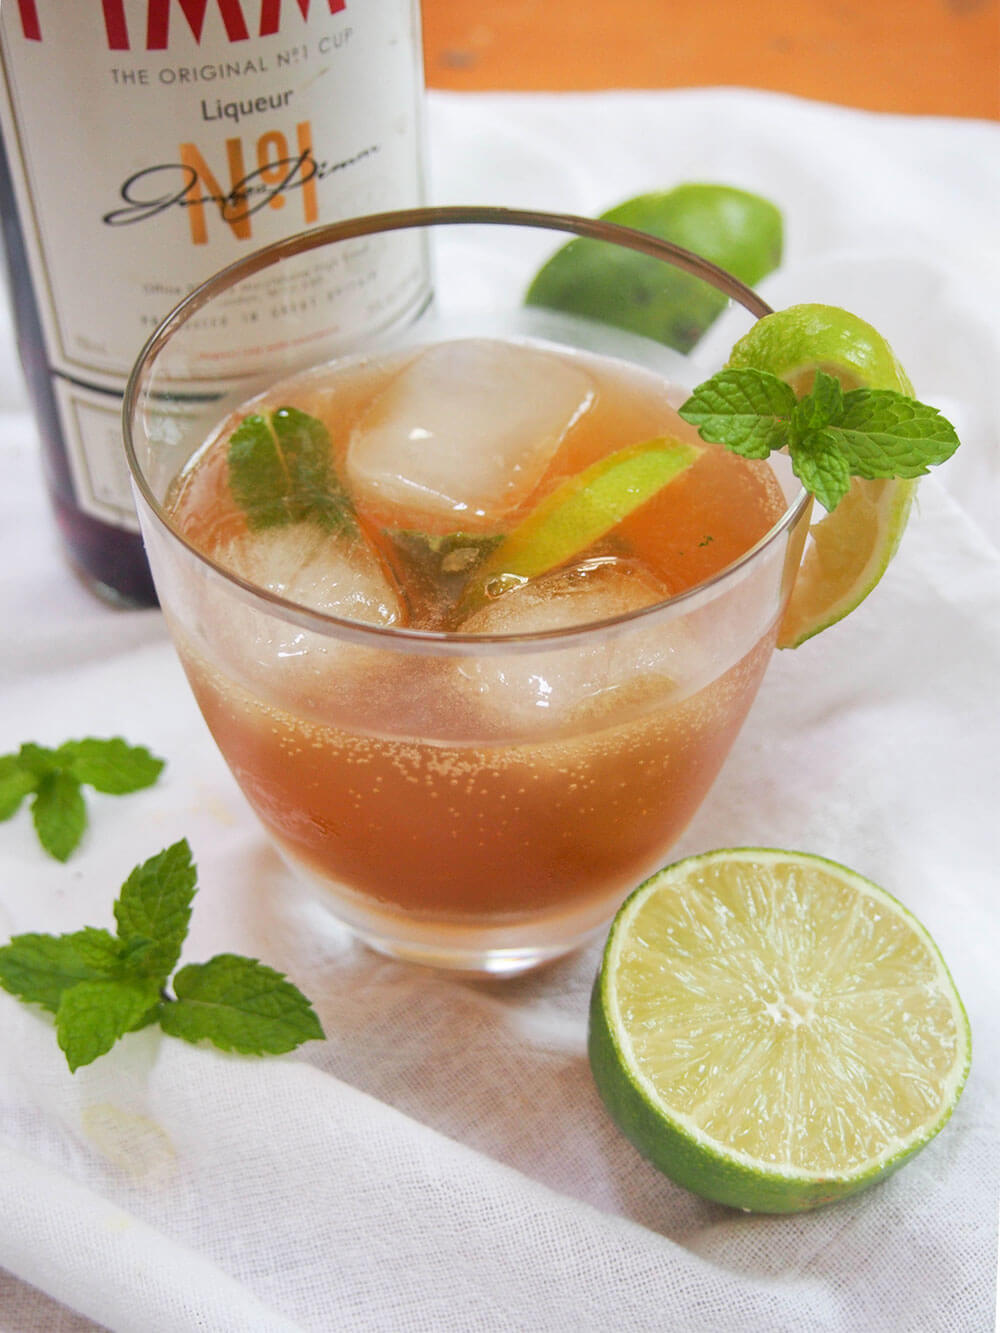 pimm's mojito - an alternative pimm's cocktail